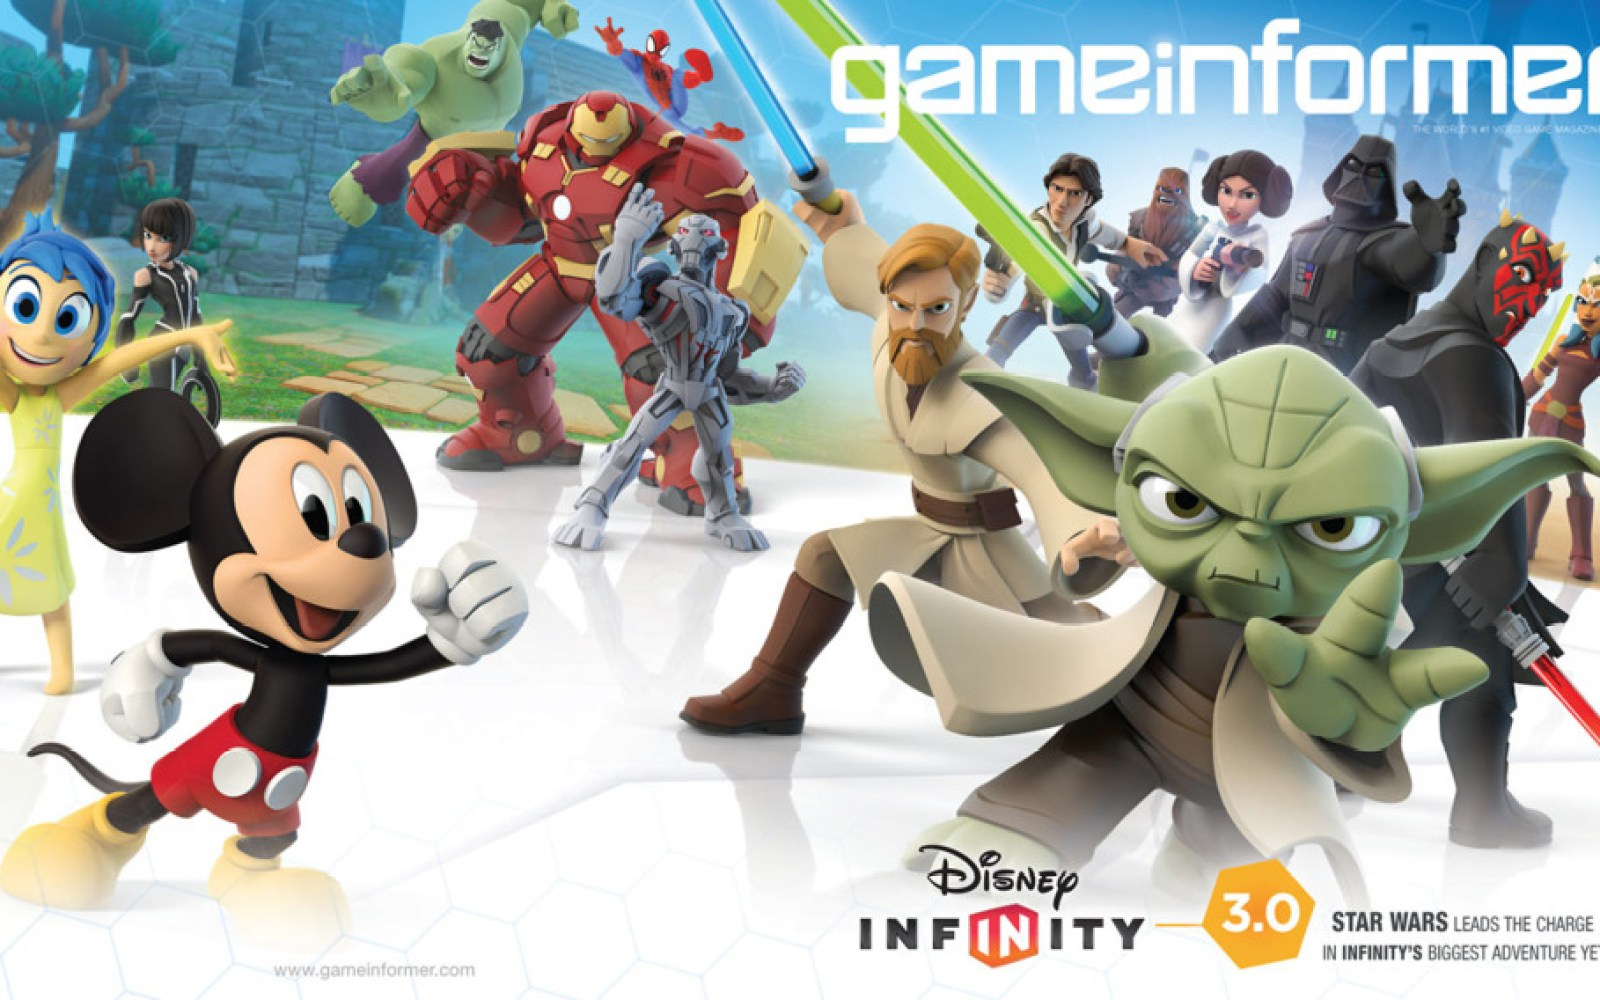 Disney Infinity 3.0 has been officially revealed with new Star Wars and Avengers Age of Ultron Play Sets